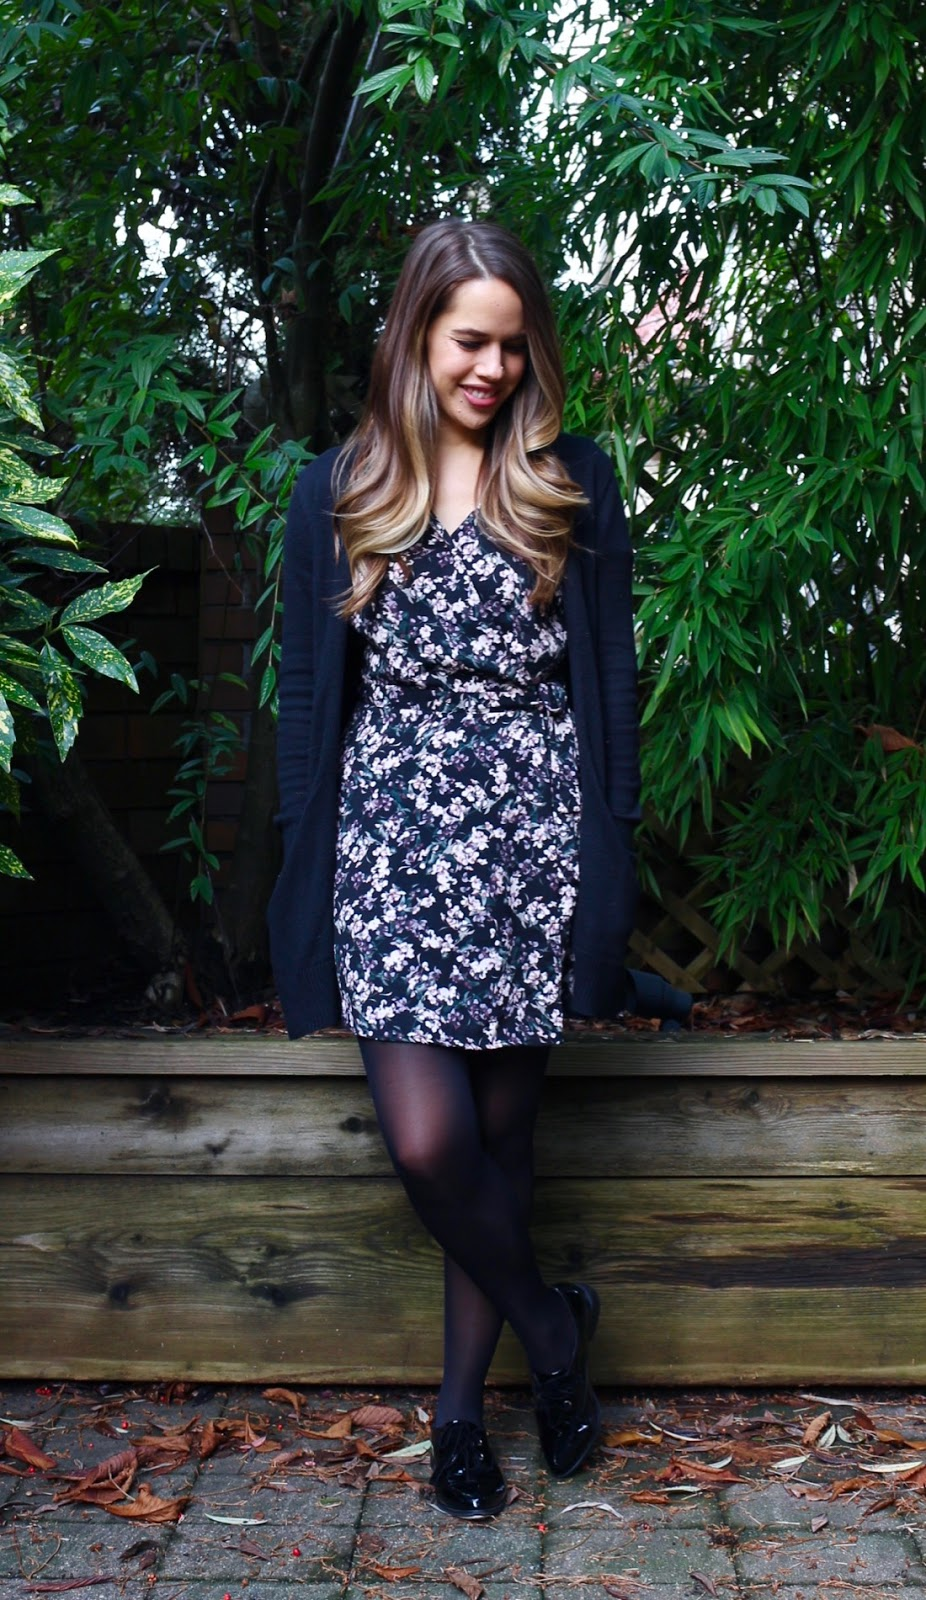 Jules in Flats - Wrap Dress with Long Line Cardigan (Business Casual Winter Workwear on a Budget)